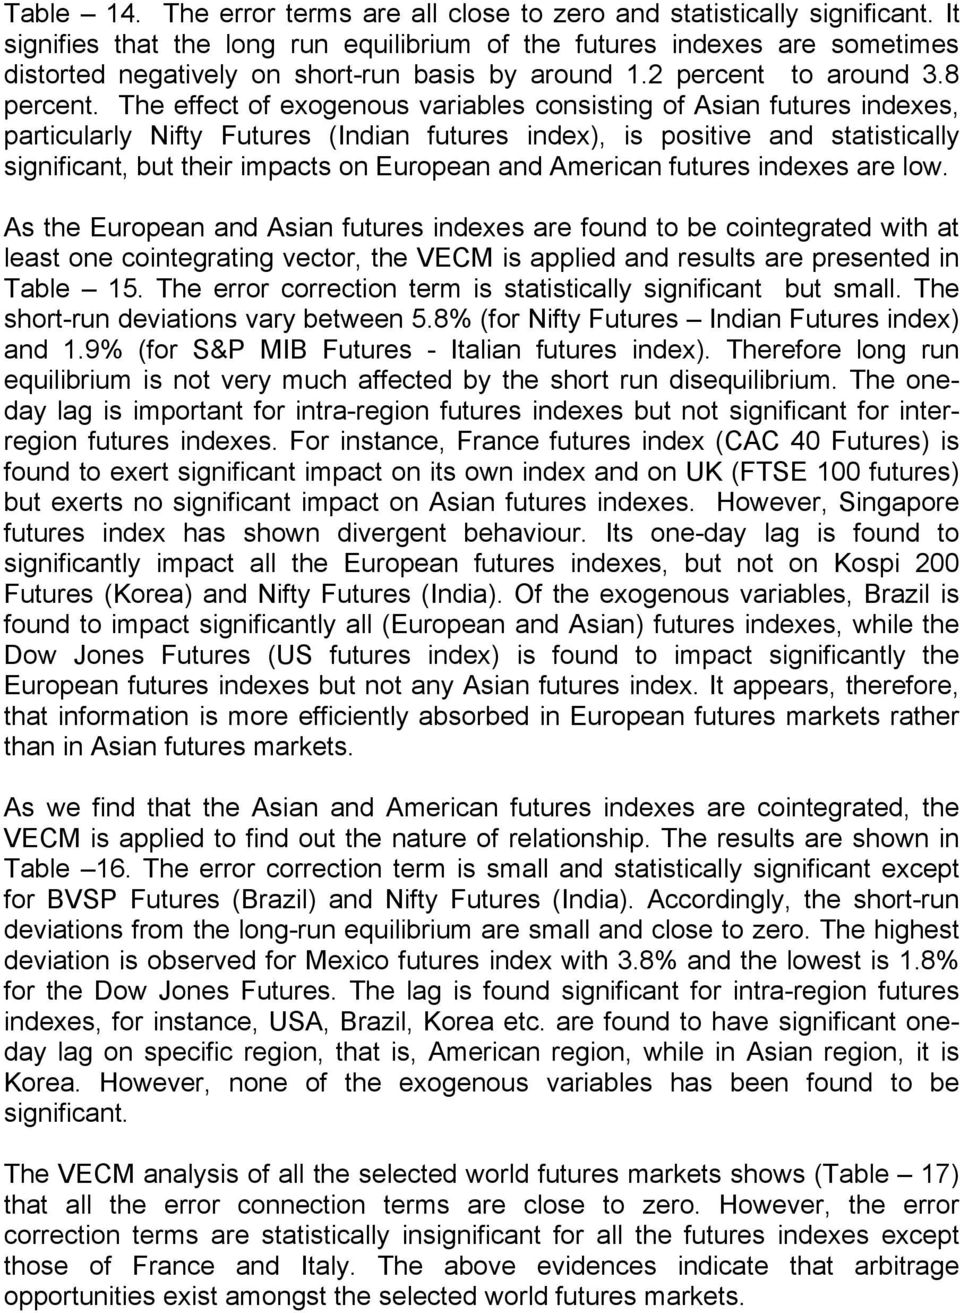 The effect of exogenous variables consisting of Asian futures indexes, particularly Nifty Futures (Indian futures index), is positive and statistically significant, but their impacts on European and